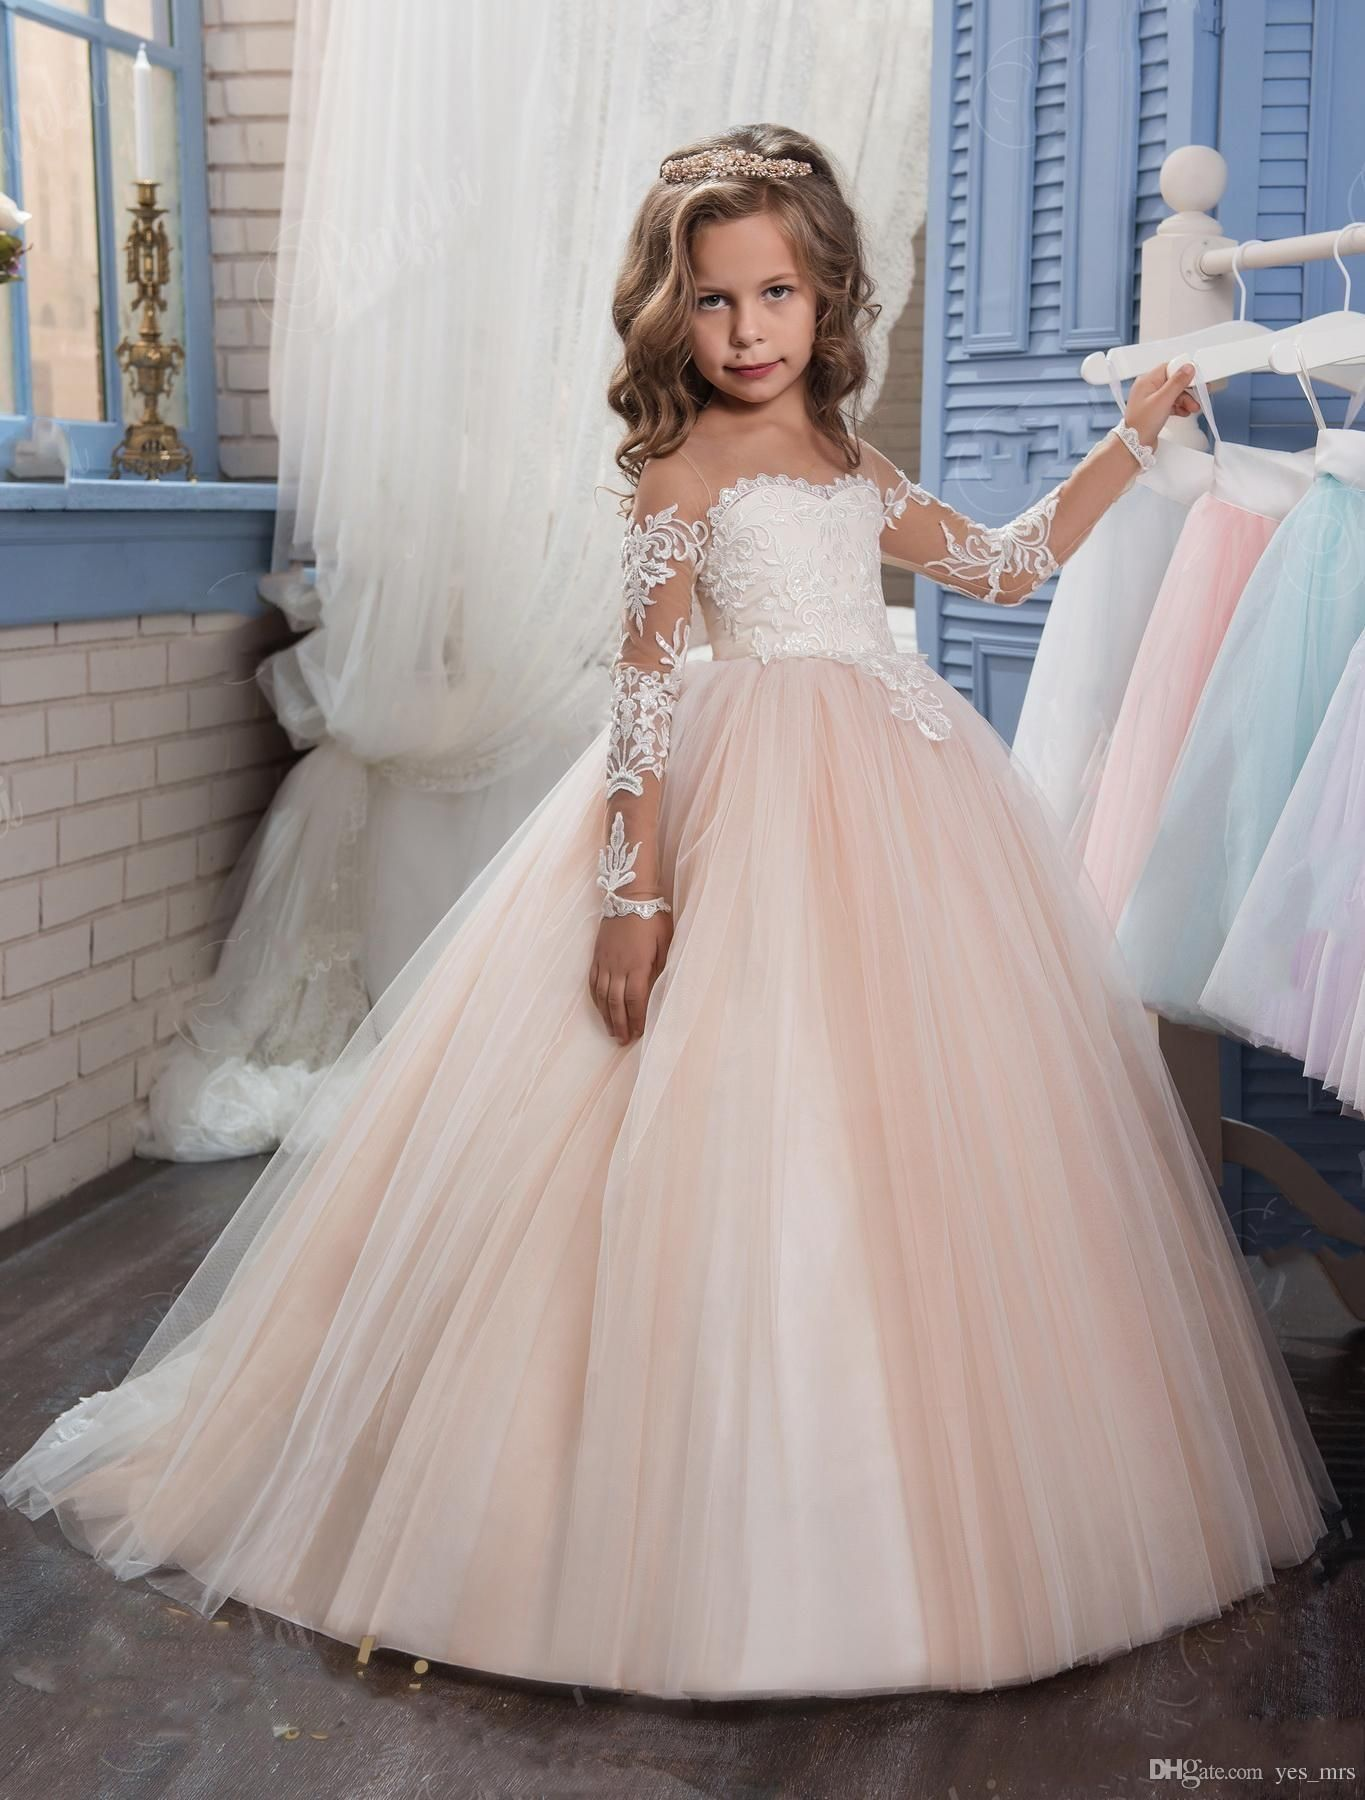 10b24e43edb 2017 New Cheap Flower Girls Dresses For Weddings Jewel Neck Long Sleeves  Lace Blush Pink Birthday Dress Children Party Kids Girl Ball Gowns